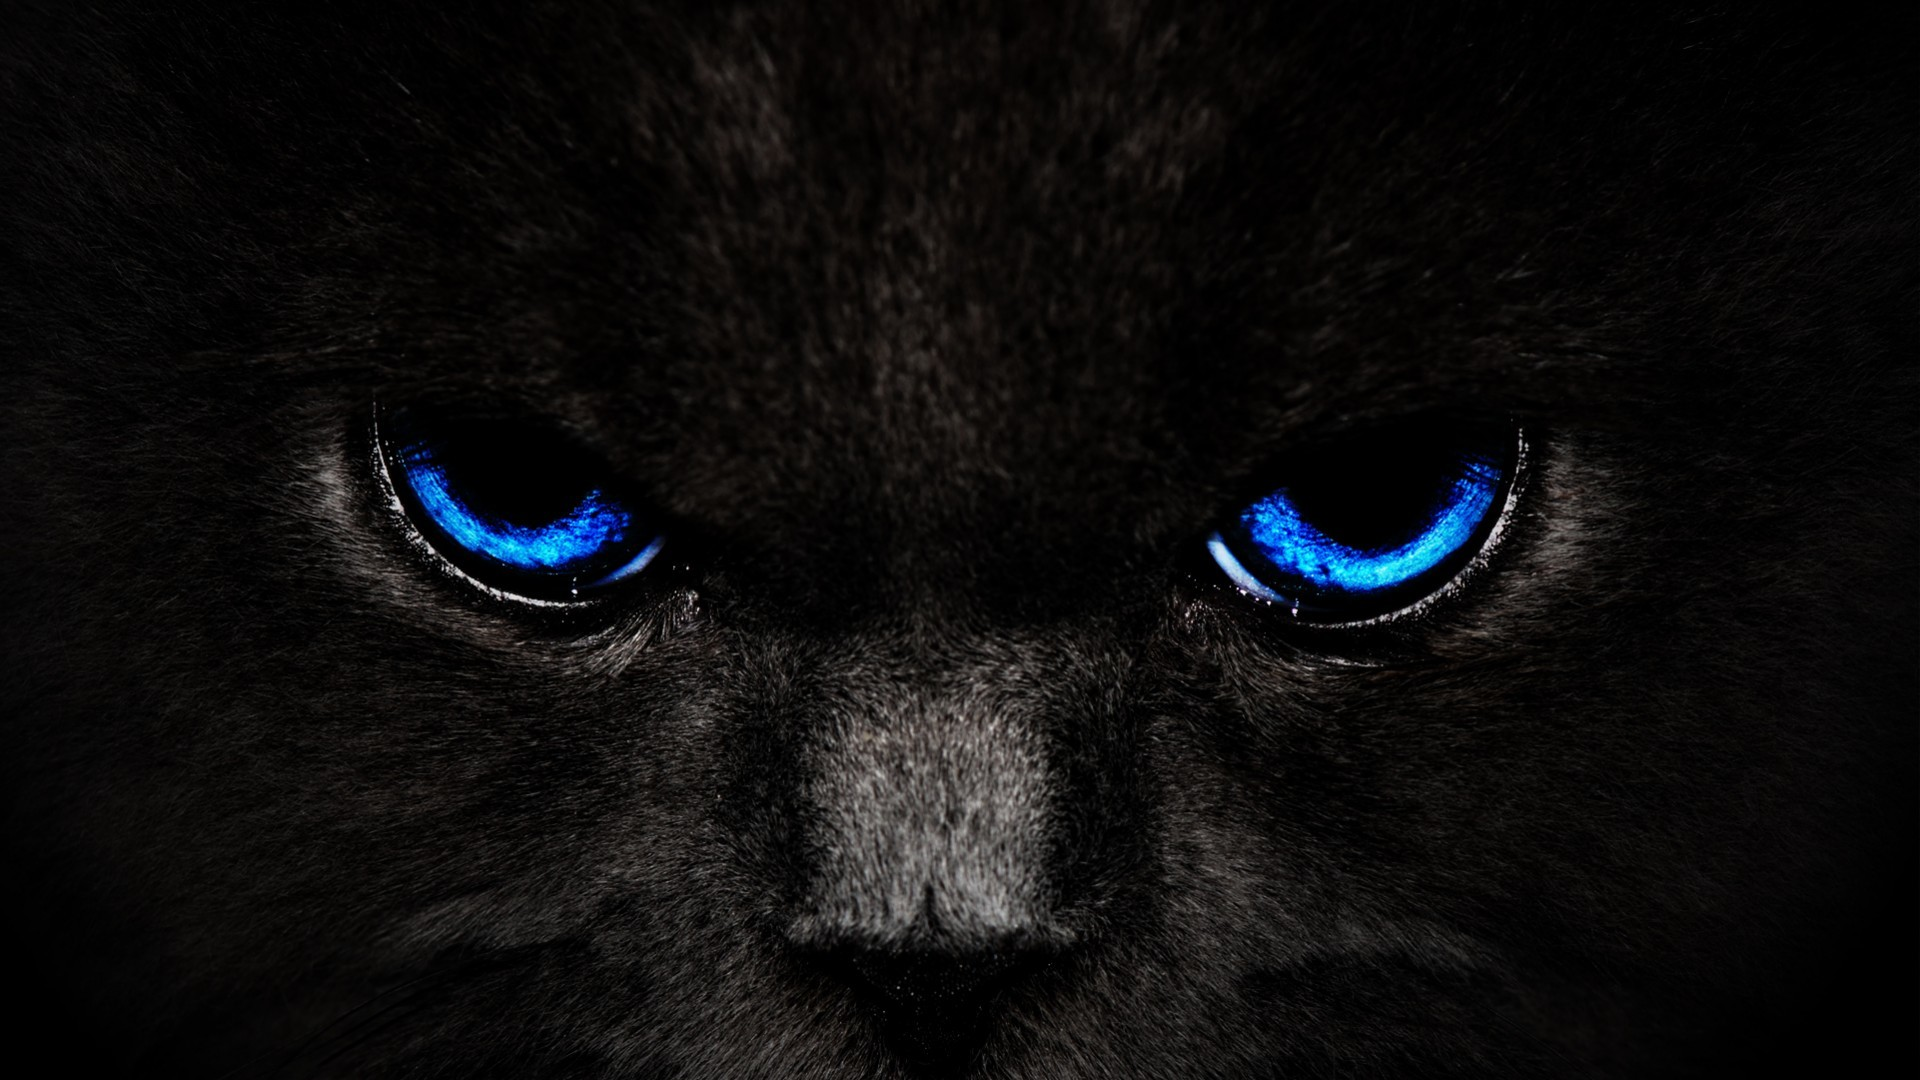 1920x1080 Black Cat Blue Eyes | High Quality Wallpapers,Wallpaper Desktop,High .